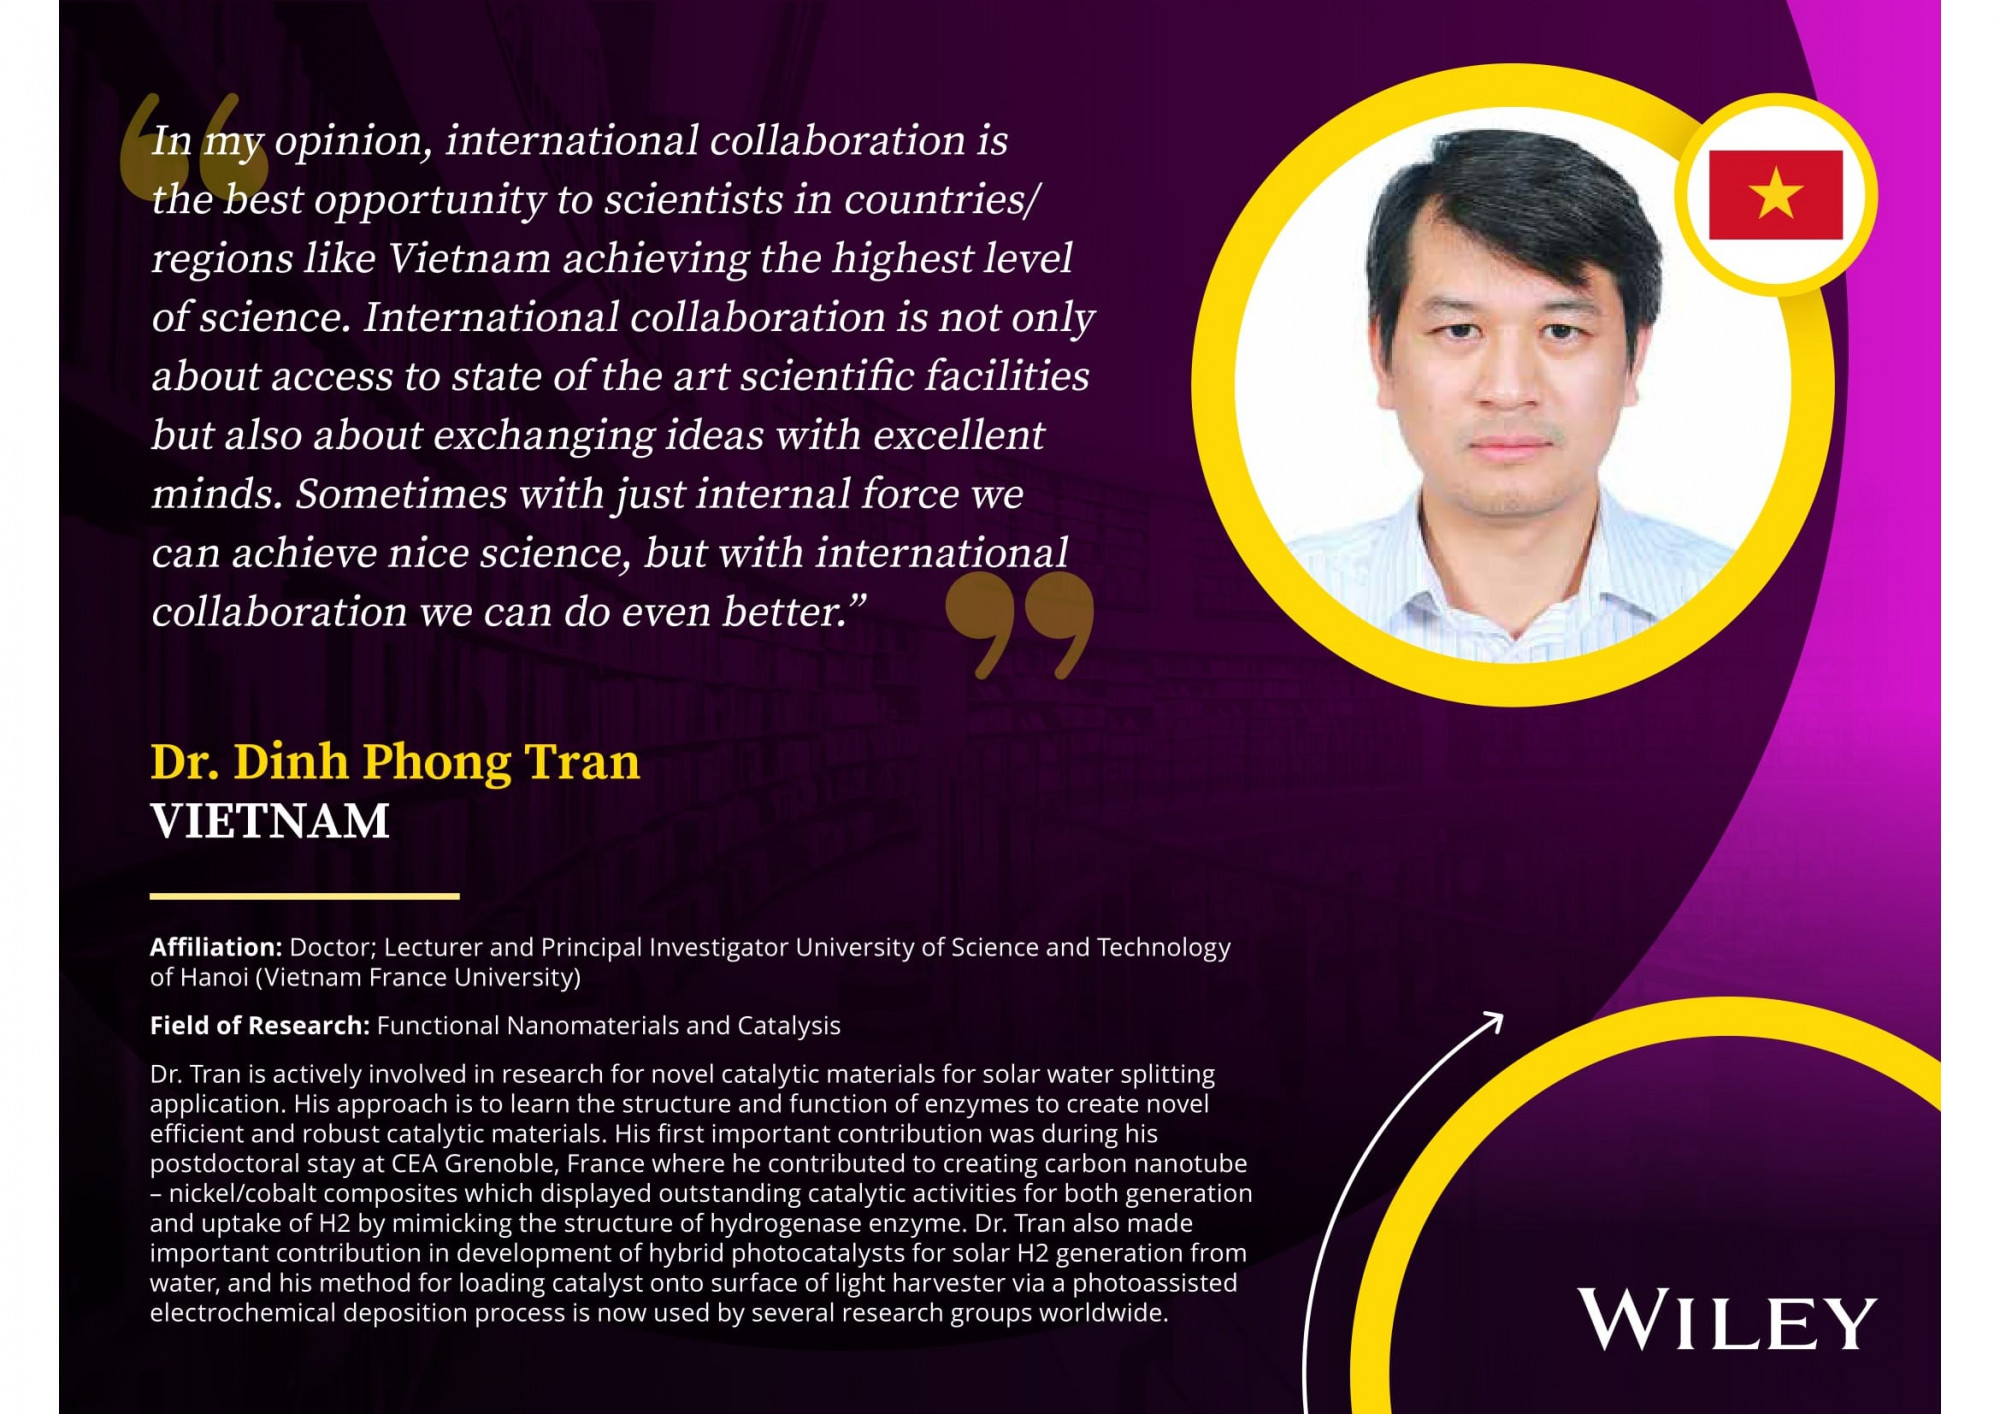 Dr. Tran Dinh Phong in the list of the top 17 nominees